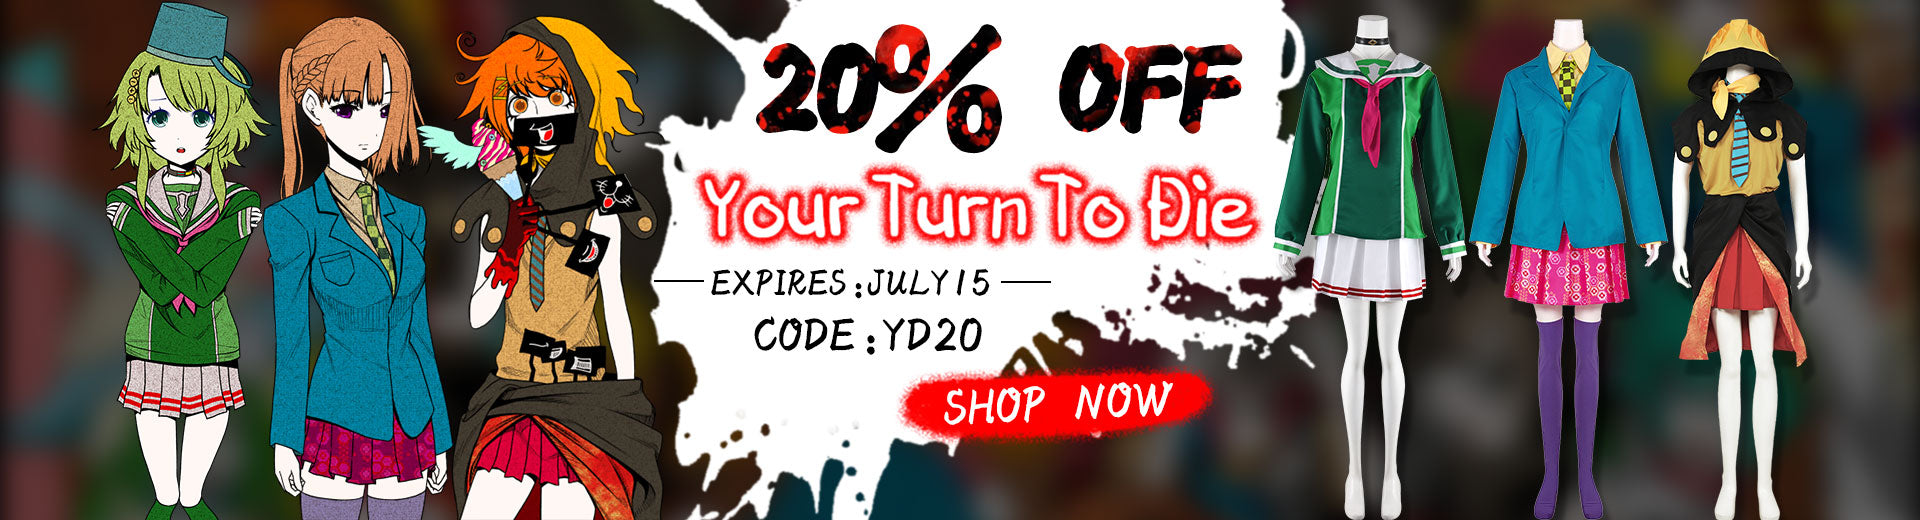 Your Turn to Die 20% Off